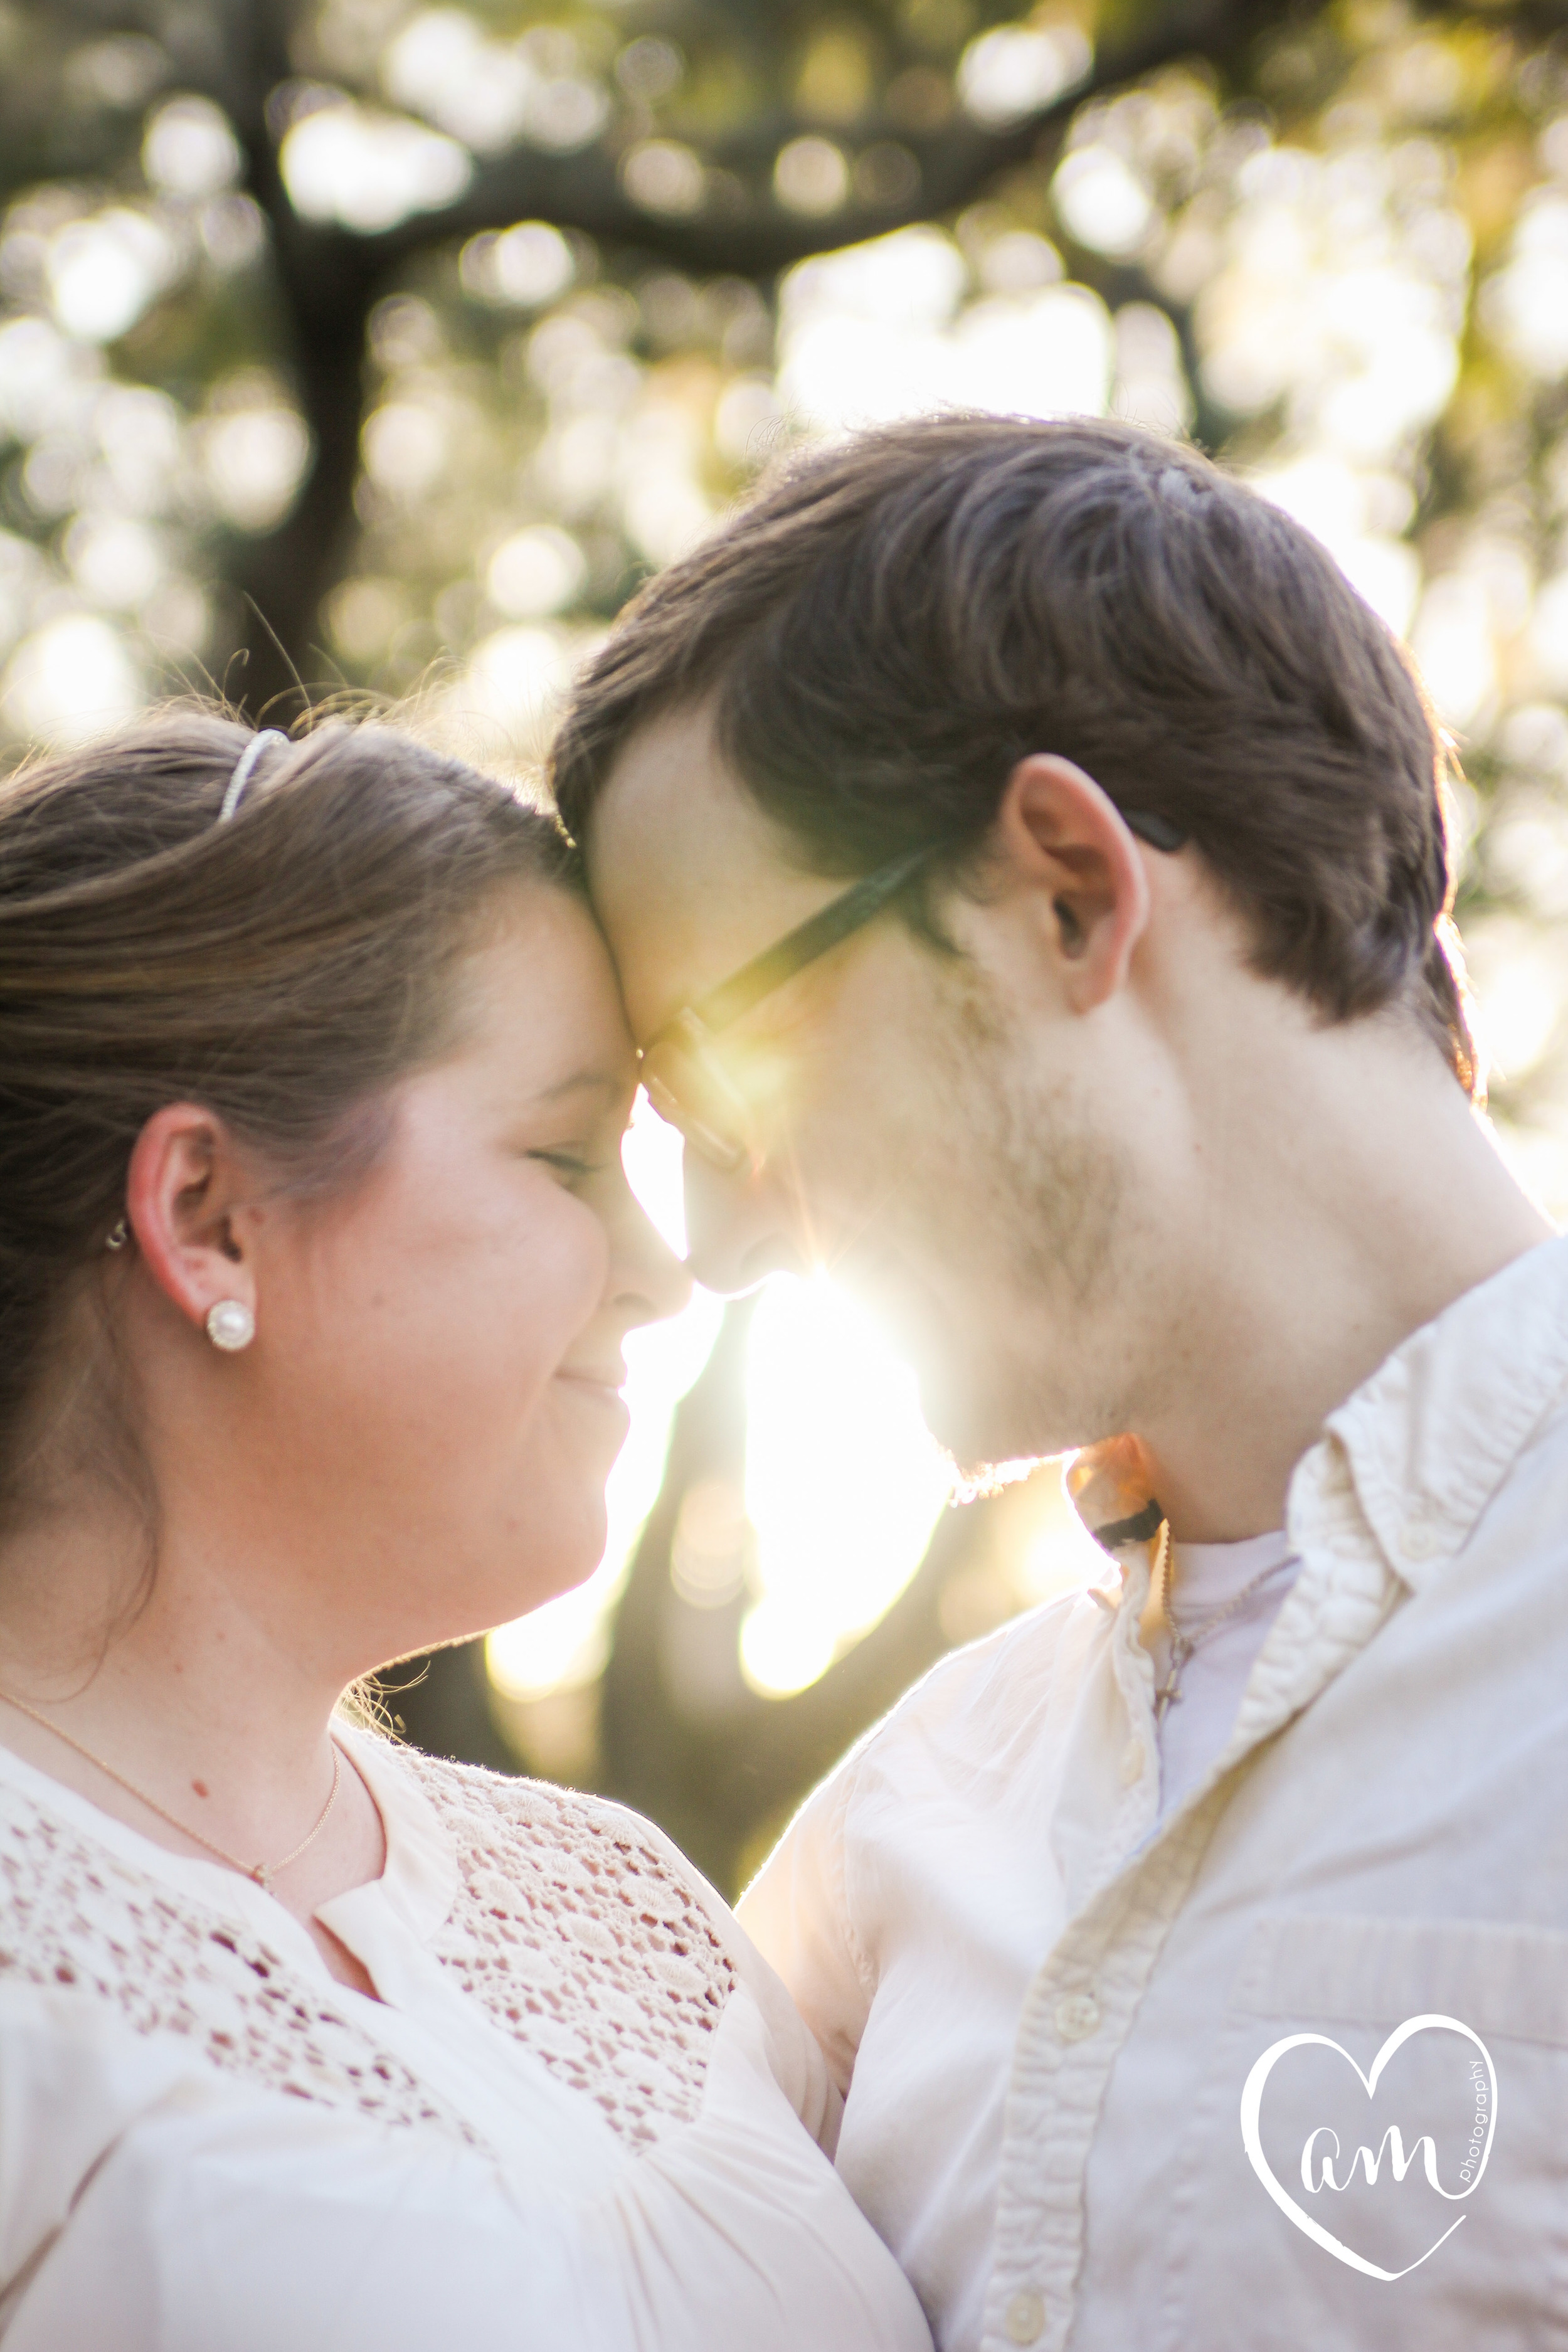 Beautiful and whimsical engagement photography session at Shingle Creek Park